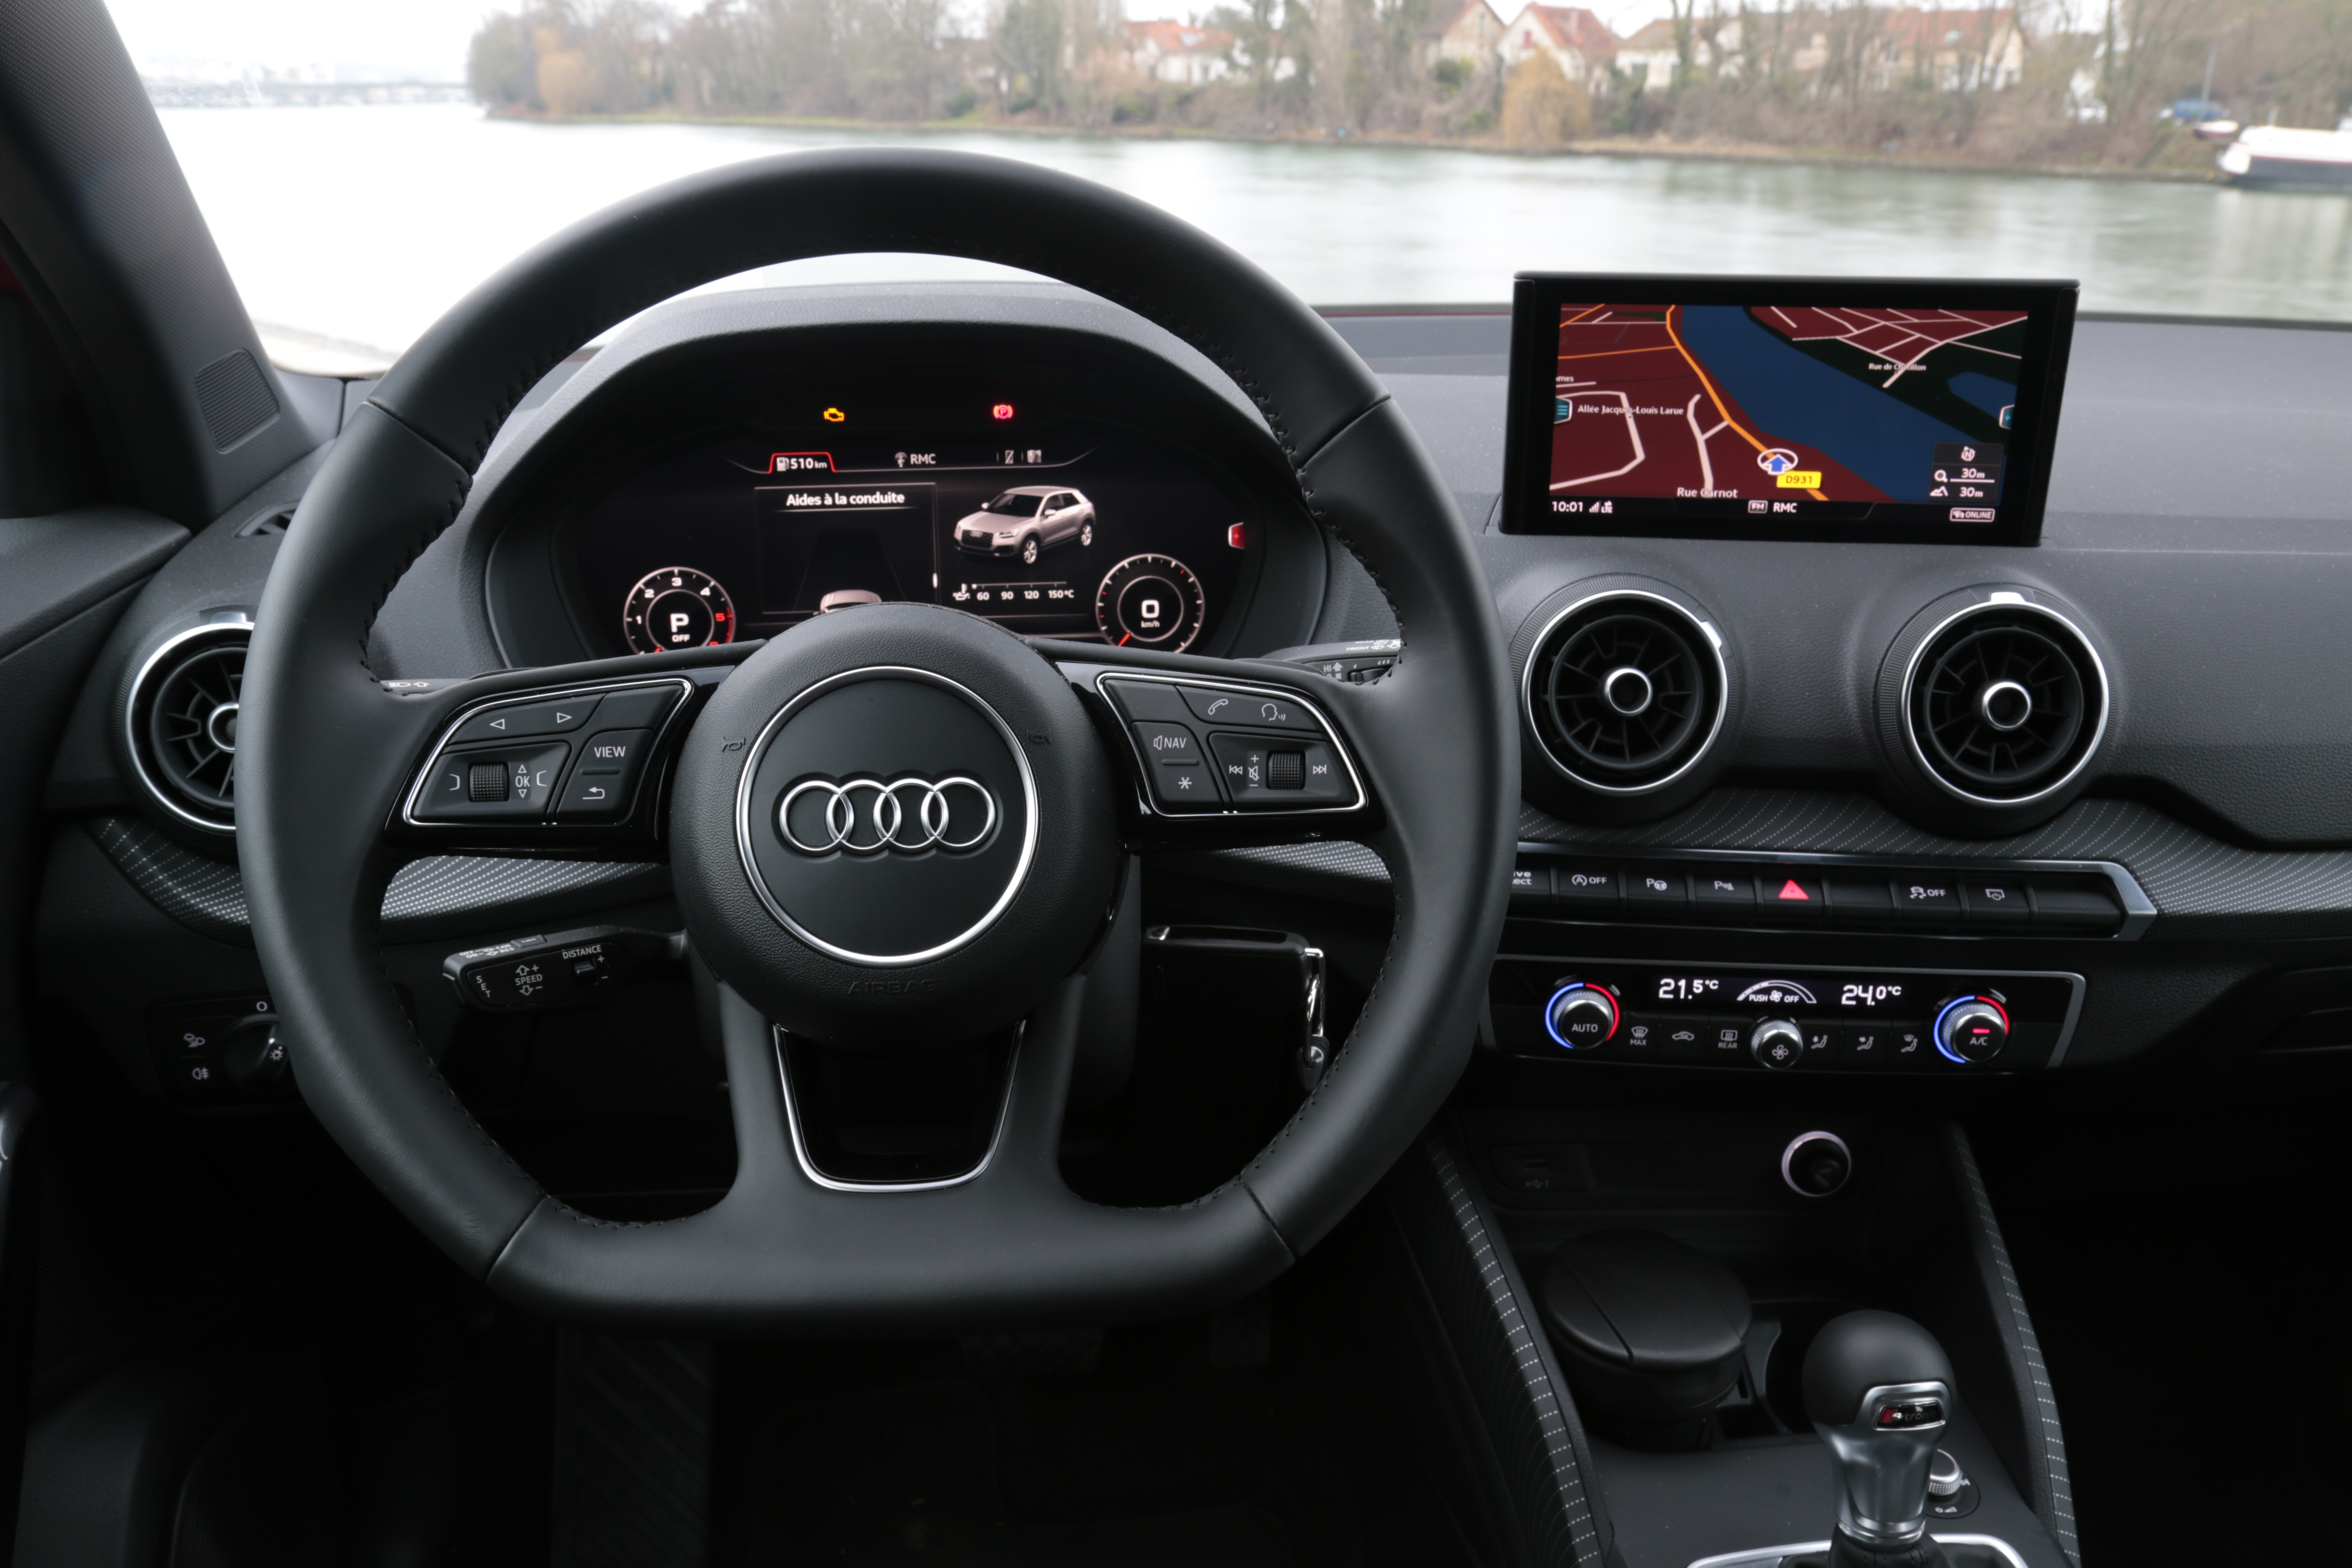 essai audi q2 2 0 tdi 190 quattro s tronic 7 2017 fer de lance en m tal pr cieux. Black Bedroom Furniture Sets. Home Design Ideas